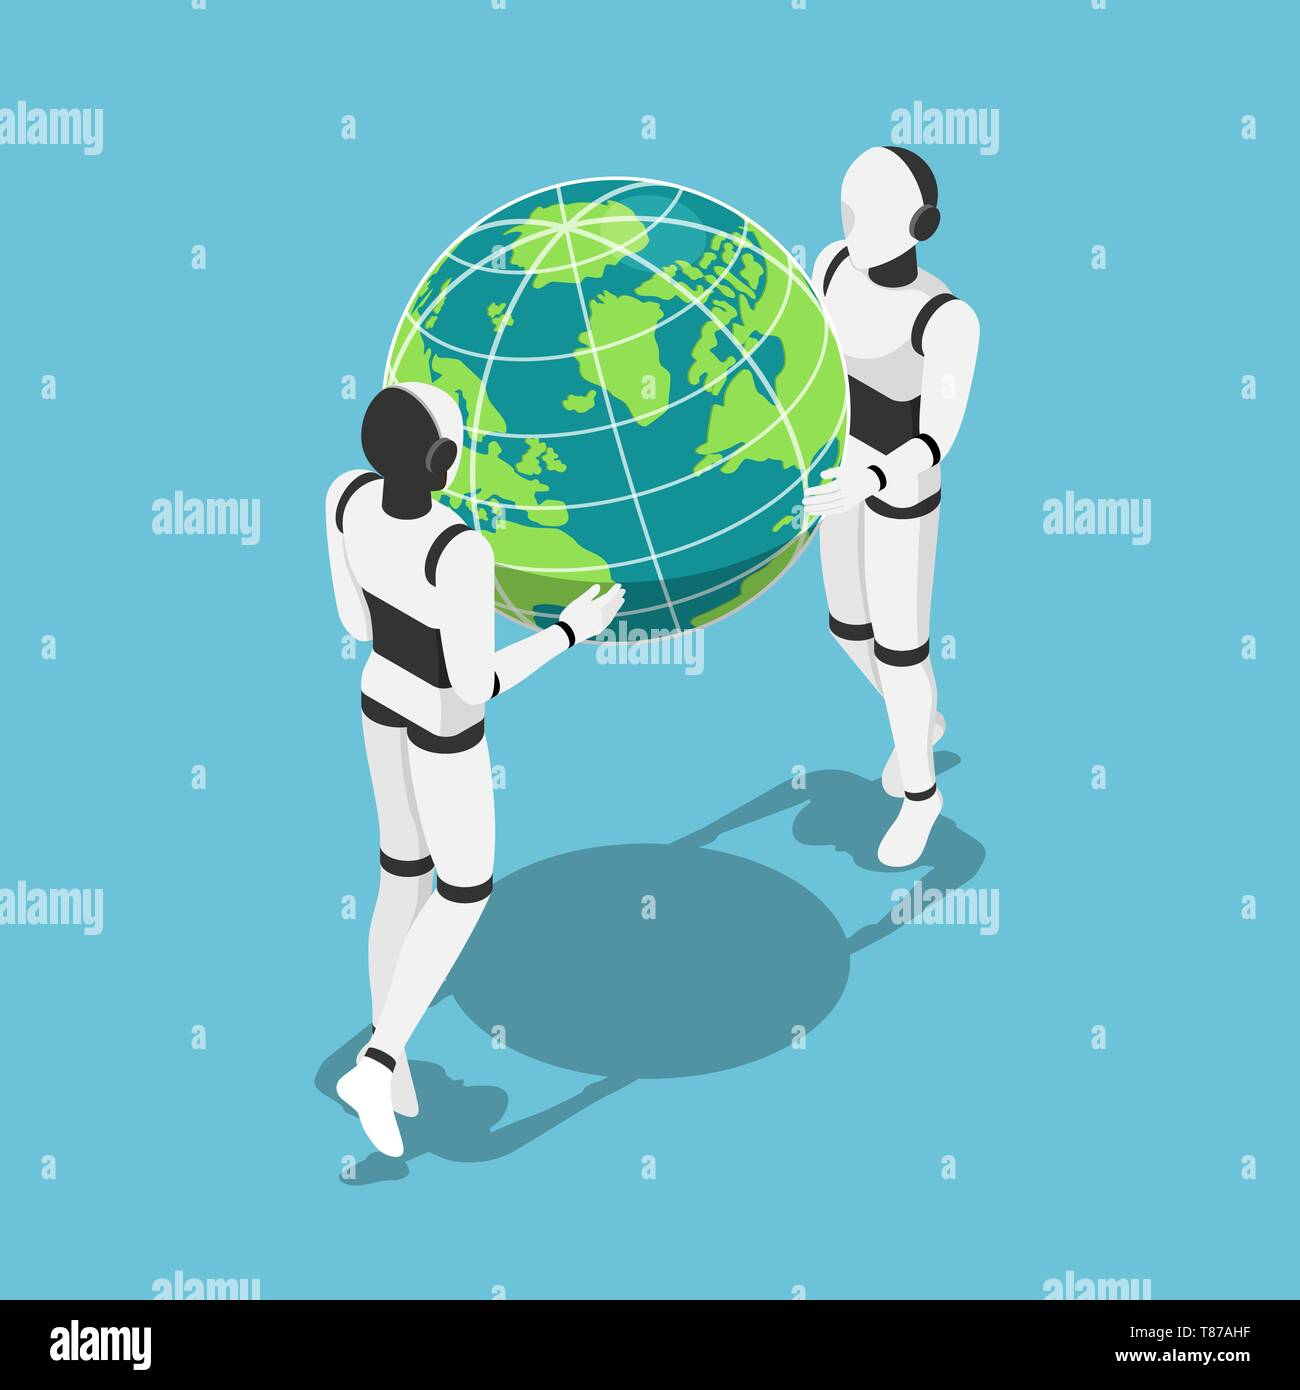 Flat 3d isometric Ai robot holding earth planet in hands. Artificial intelligence technology concept. Stock Vector